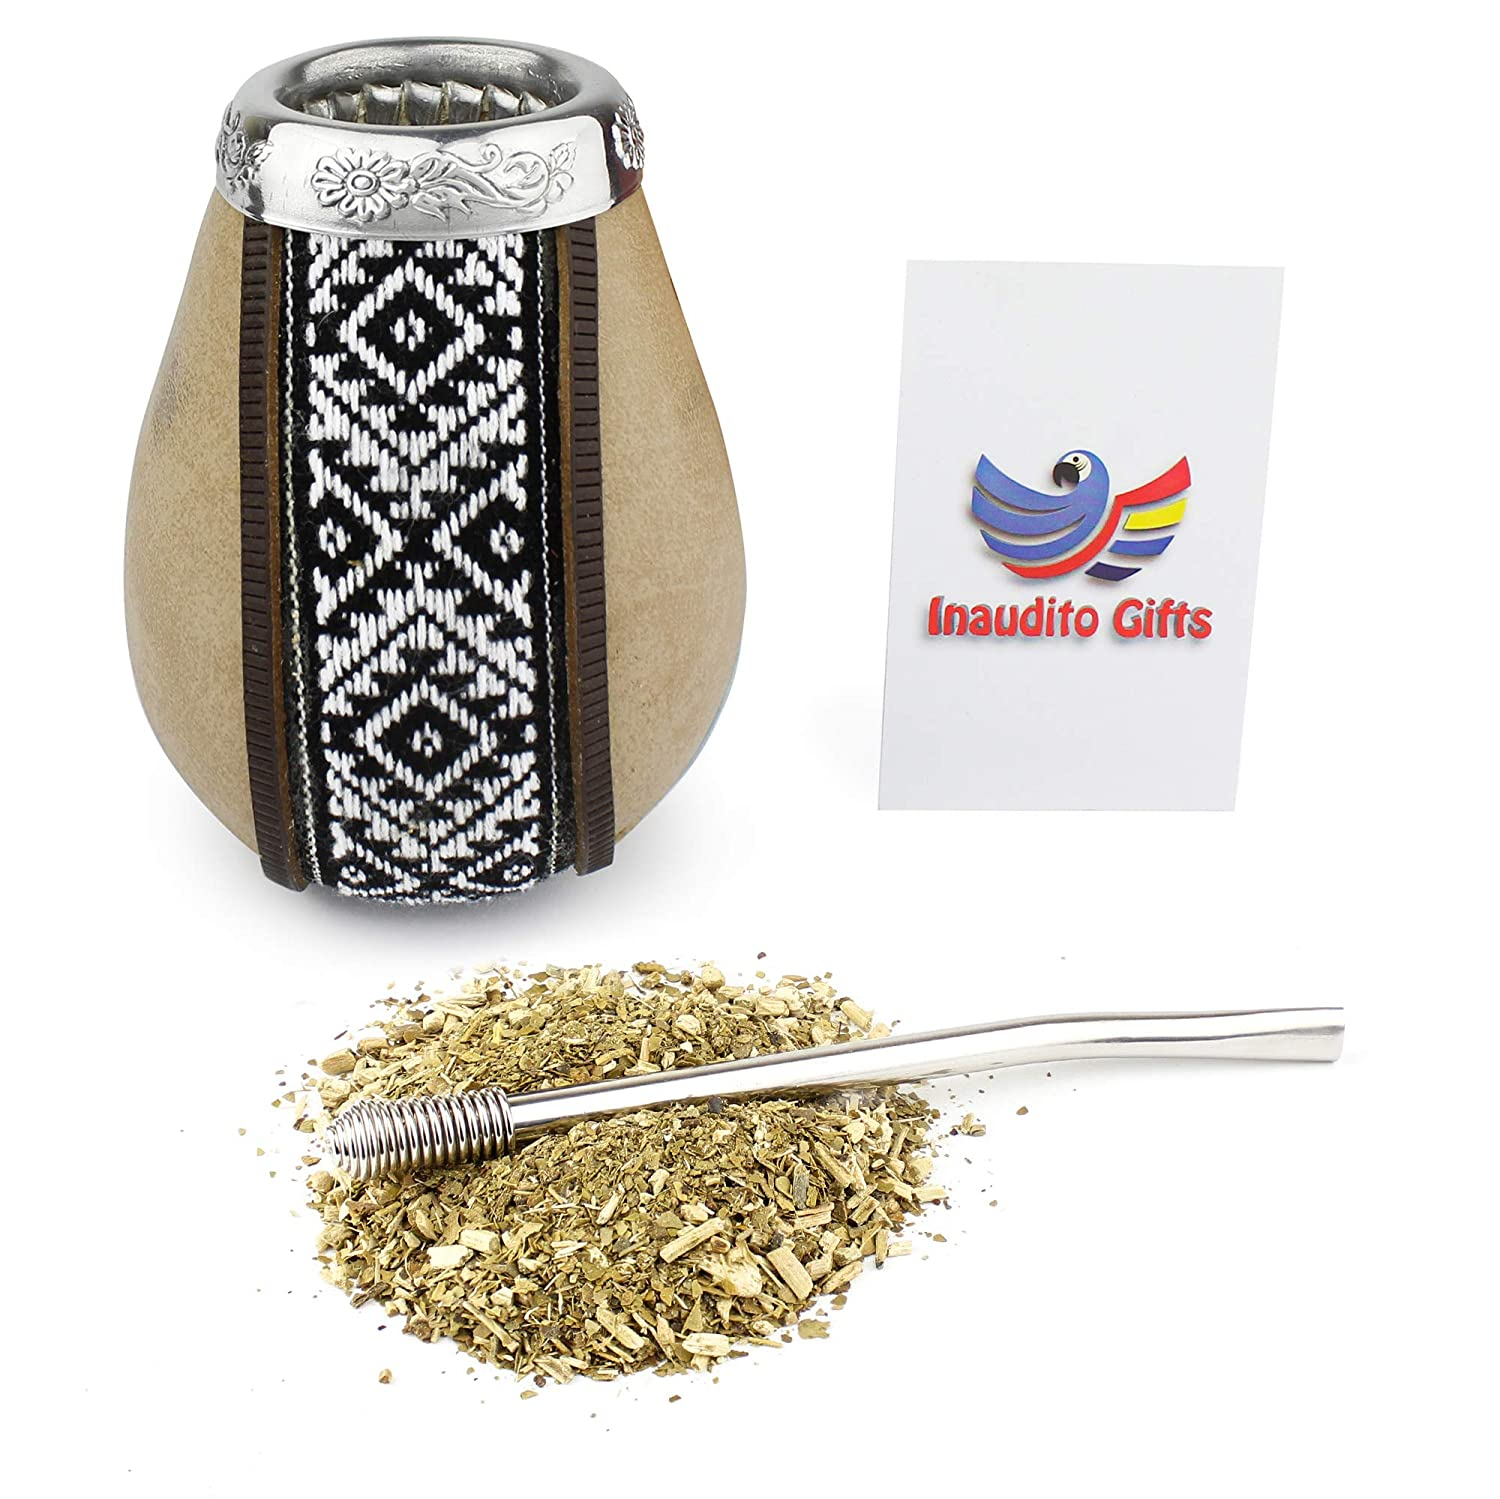 Inaudito Gifts Yerba Mate Kit Leather Edition to Drink Yerba Mate not Cured Family Size Handmade Mate Gourd bombilla and Straw